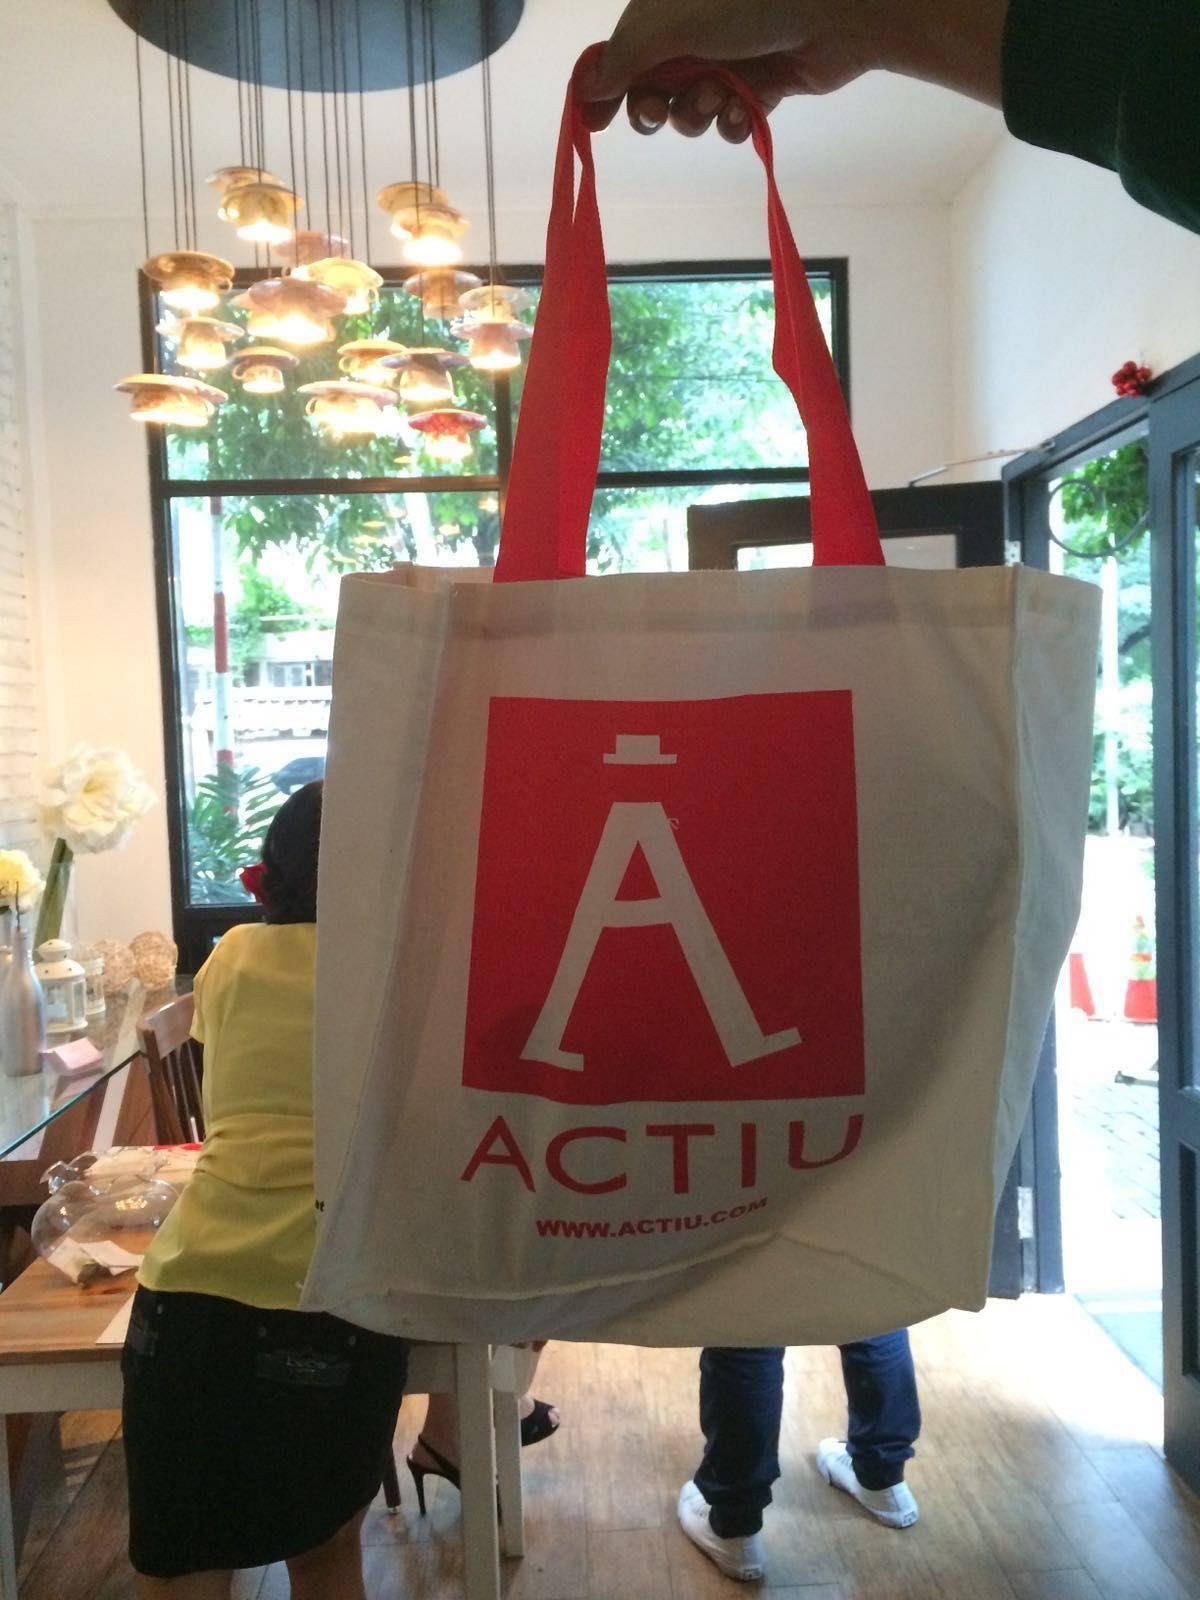 In a multitudinous event, BWI introduces the brand Actiu to the Indonesian market 7